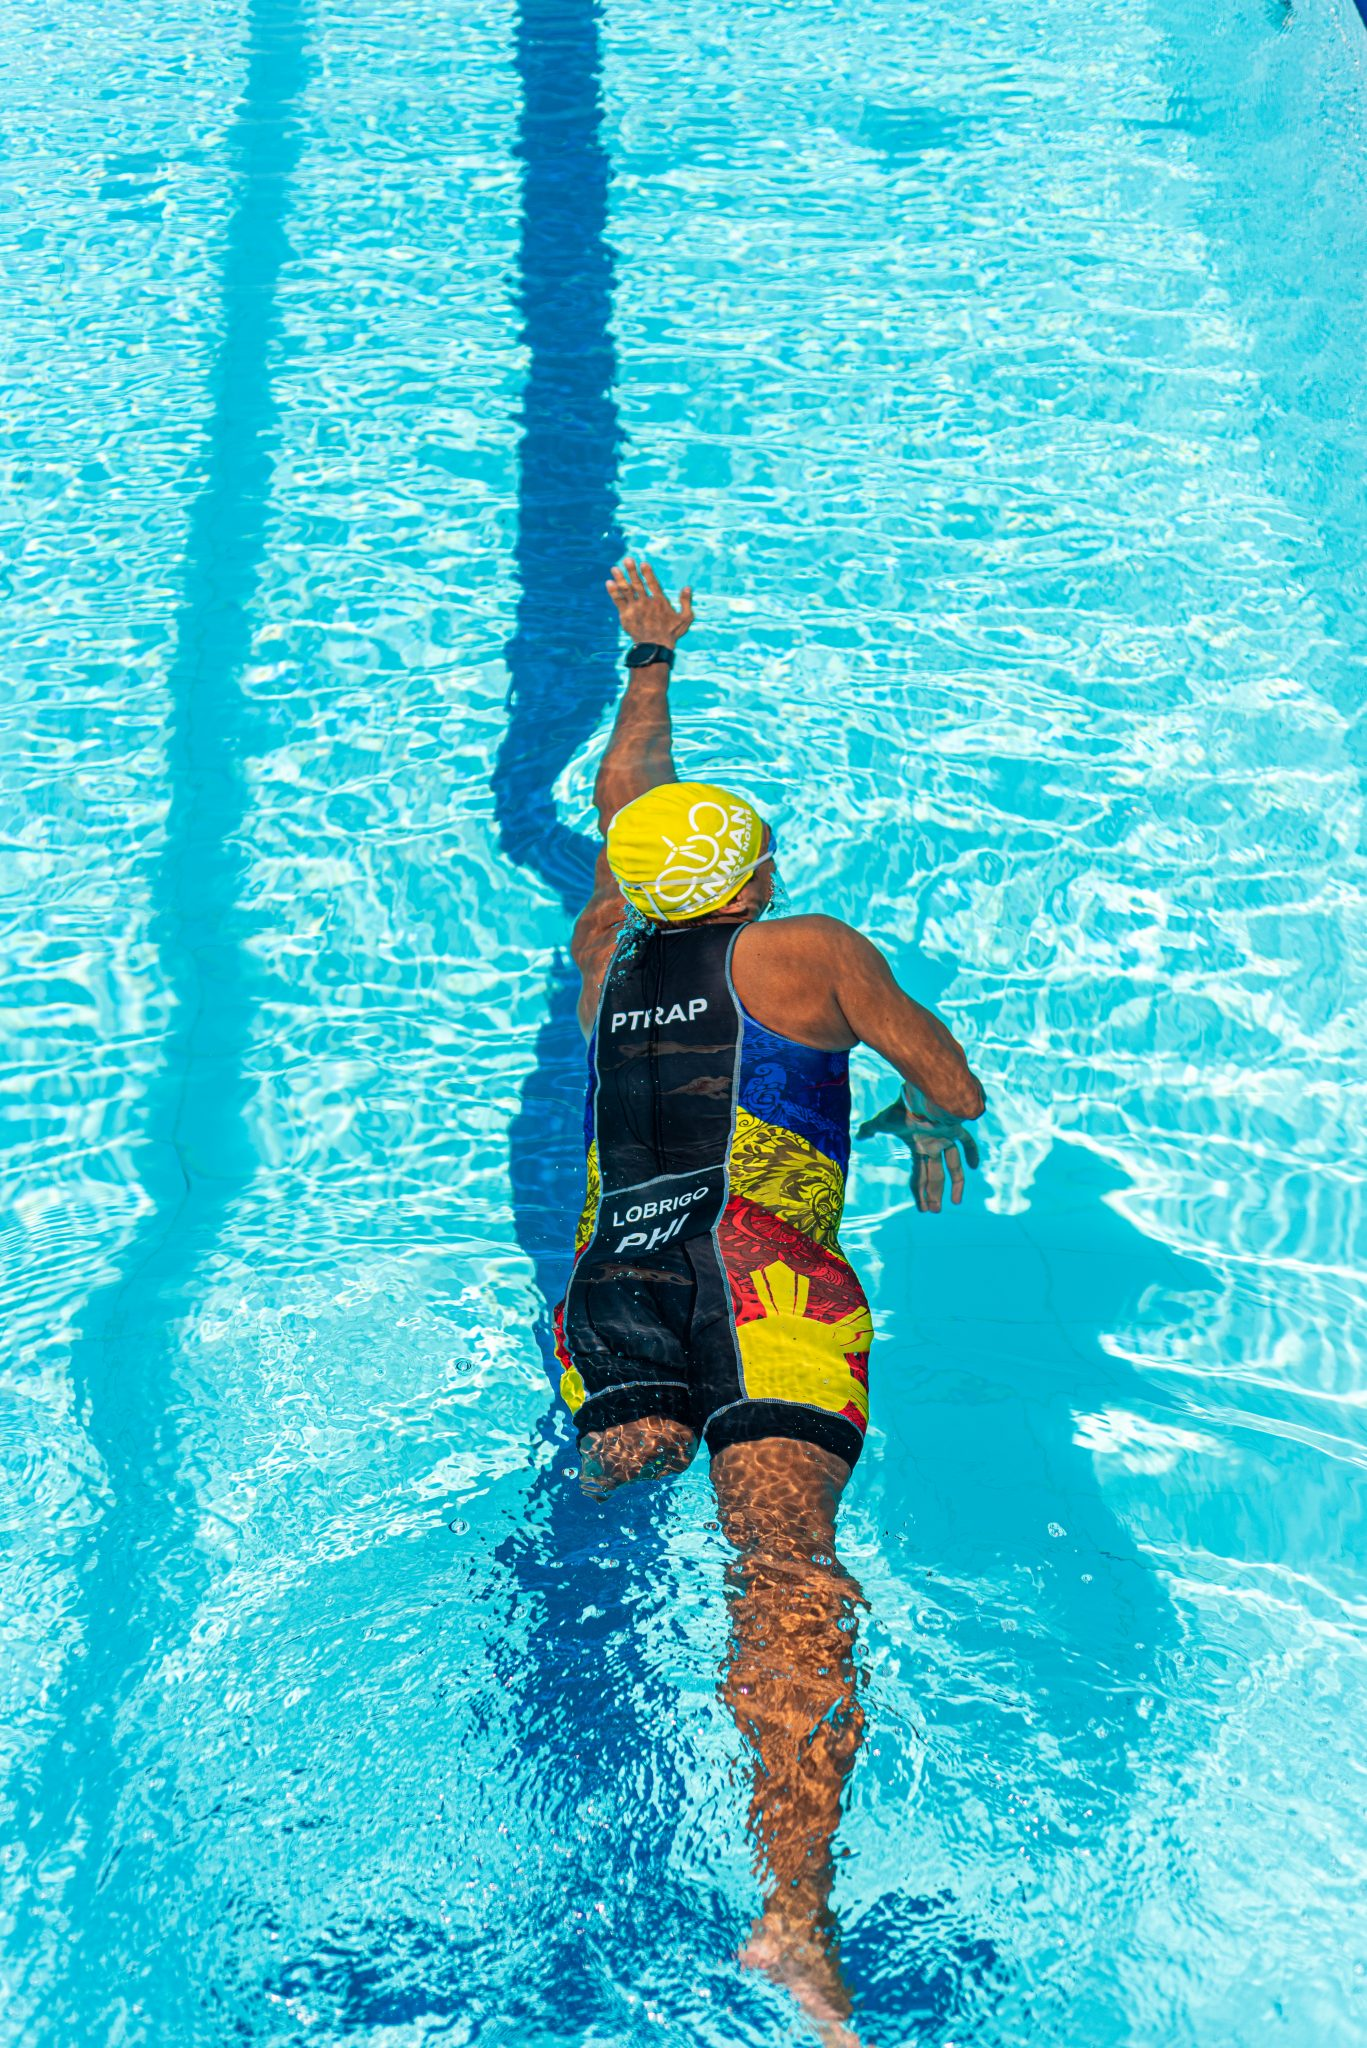 Swimming was his primary sport before he transitioned to triathlon